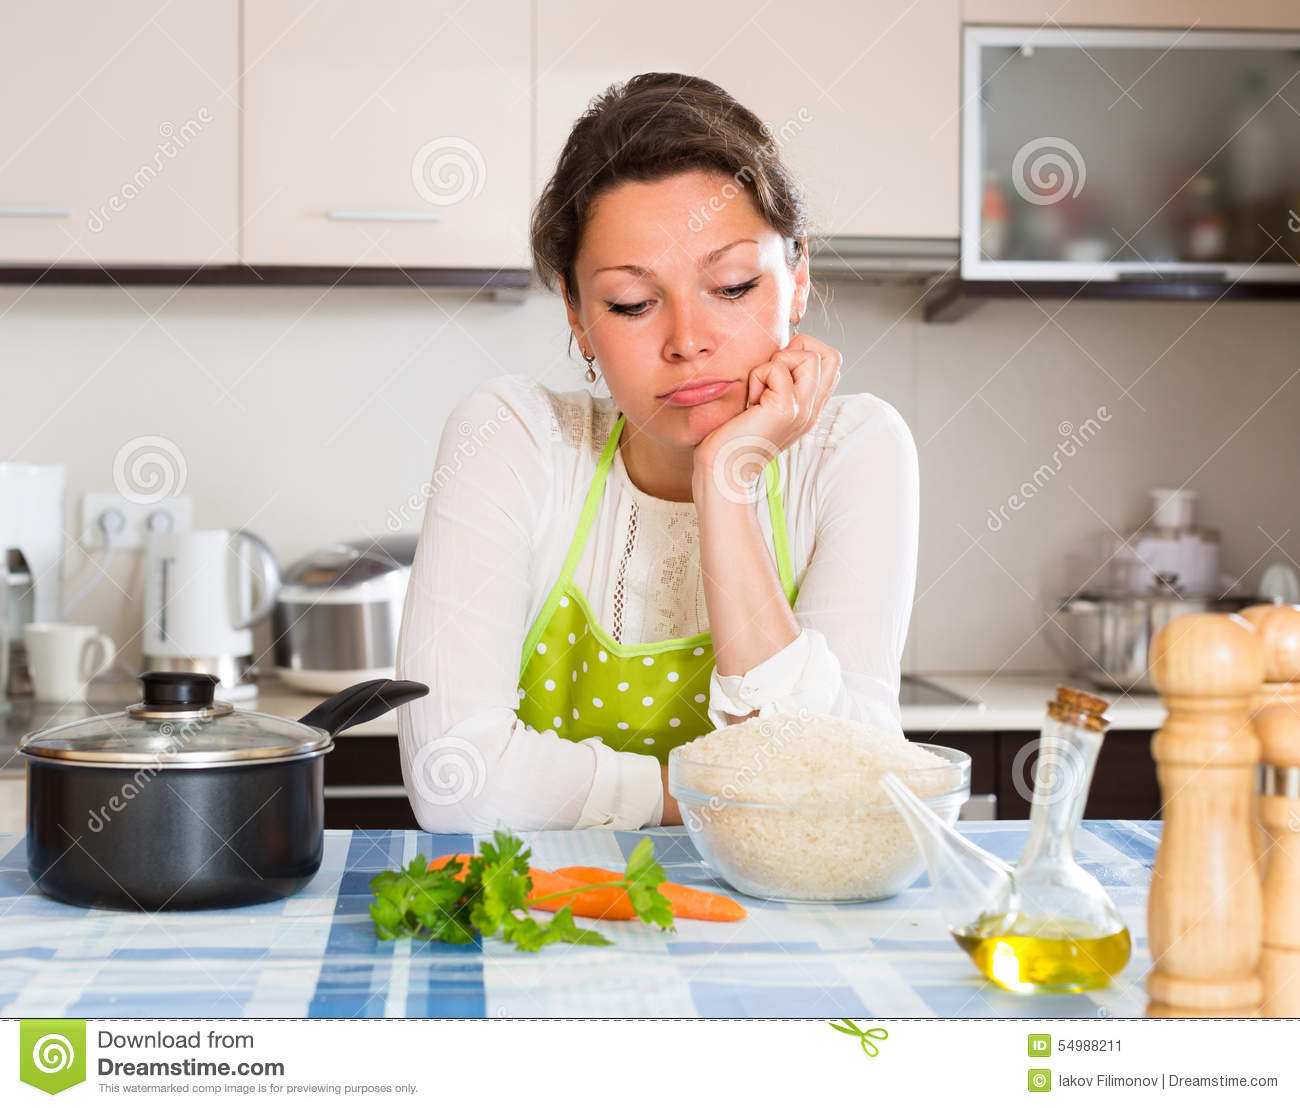 Sad Woman Cooking Rice In The Kitchen Stock Image - Image ...